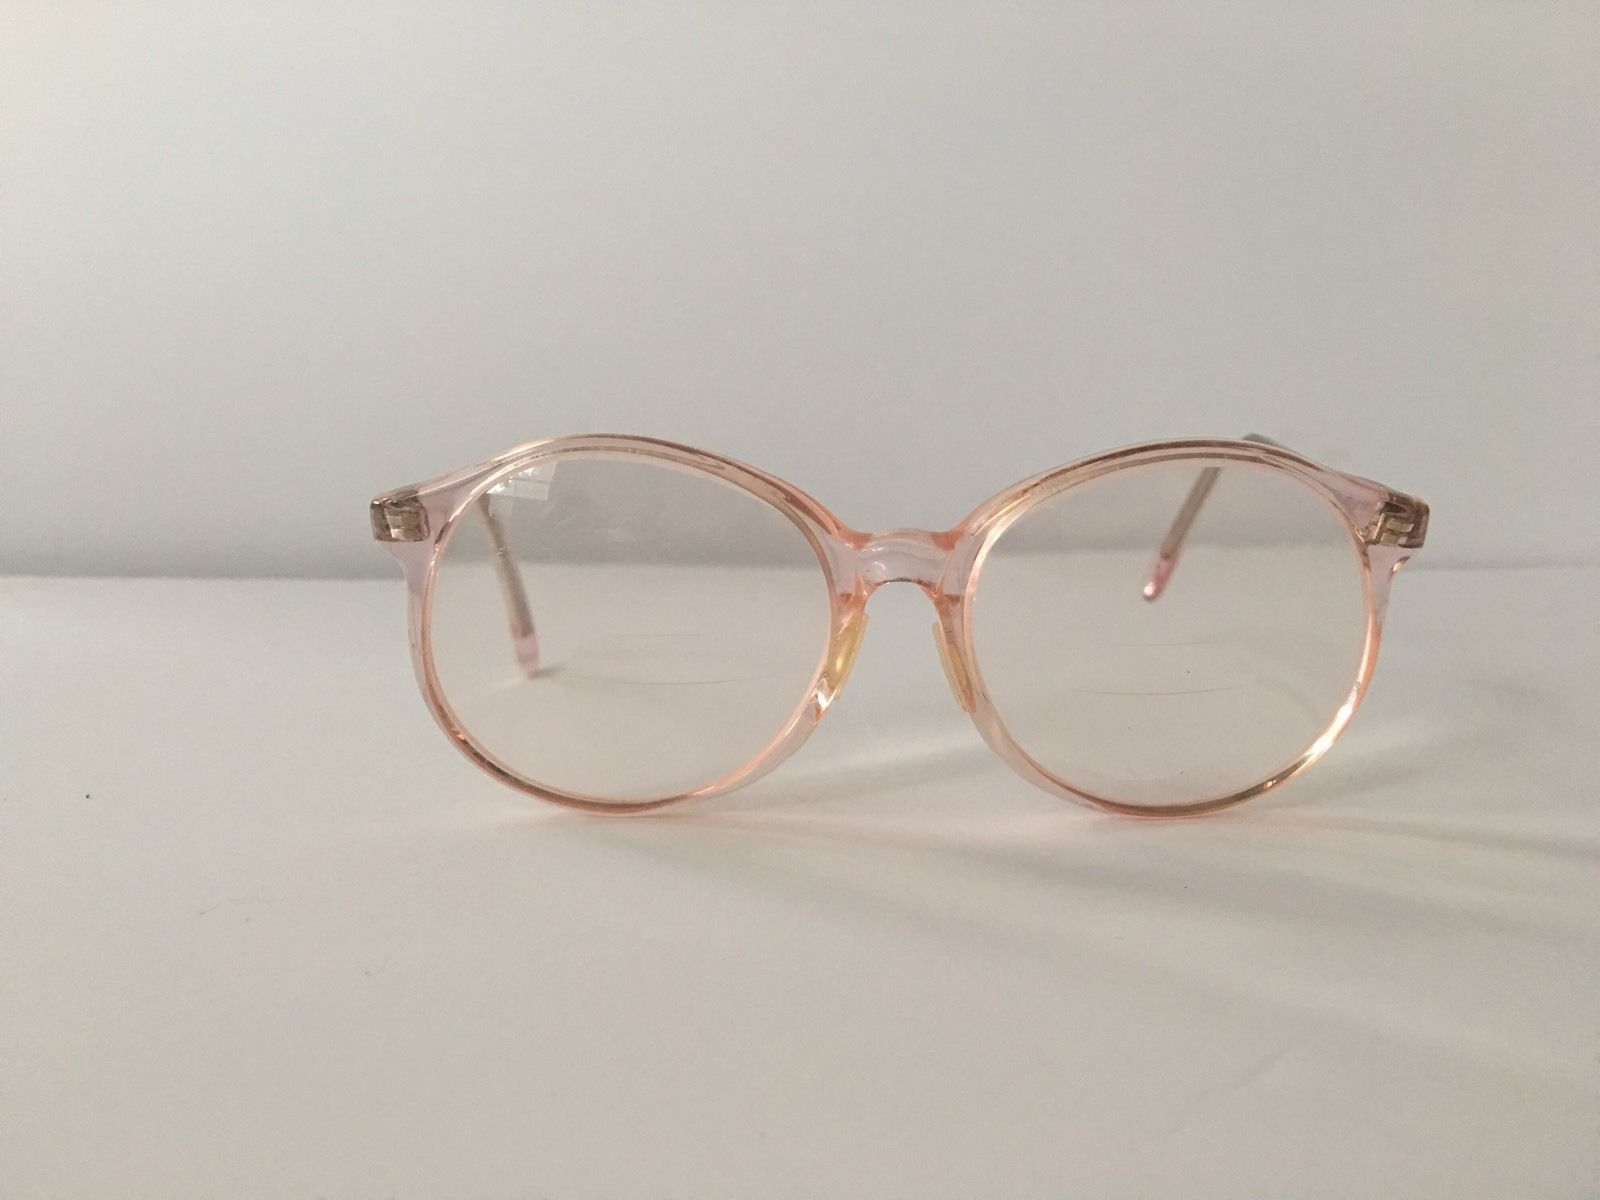 Eyeglass Frames Made In The Usa : Vintage Hipster Peach Eyeglasses by Pathways Optone Made ...